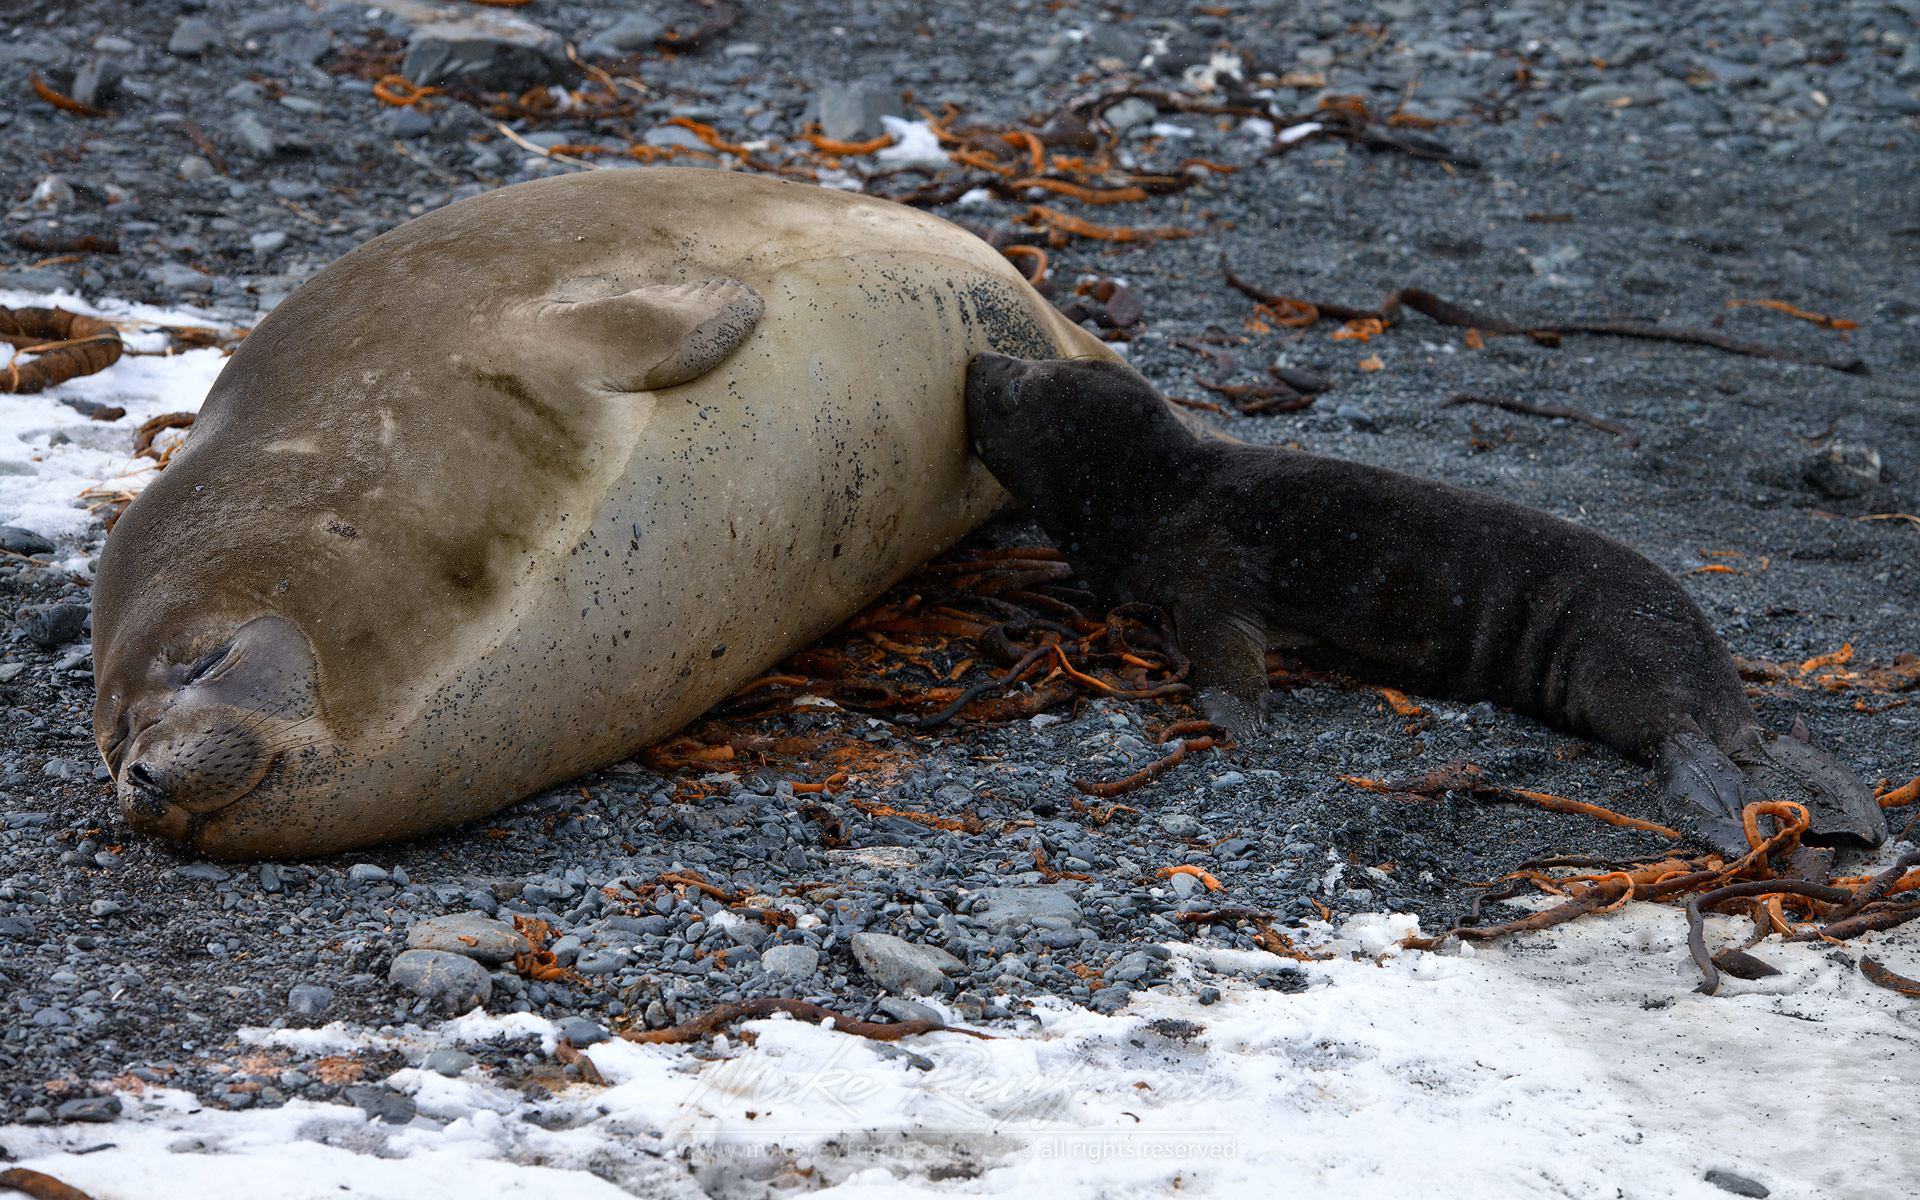 Newborn Southern Elephant Seal (Mirounga leonina) pup suckling mothers milk. South Georgia, Sub-Antarctic - Southern-Elephant-Seals-Fur-Seals-South-Georgia-Sub-Antarctic - Mike Reyfman Photography